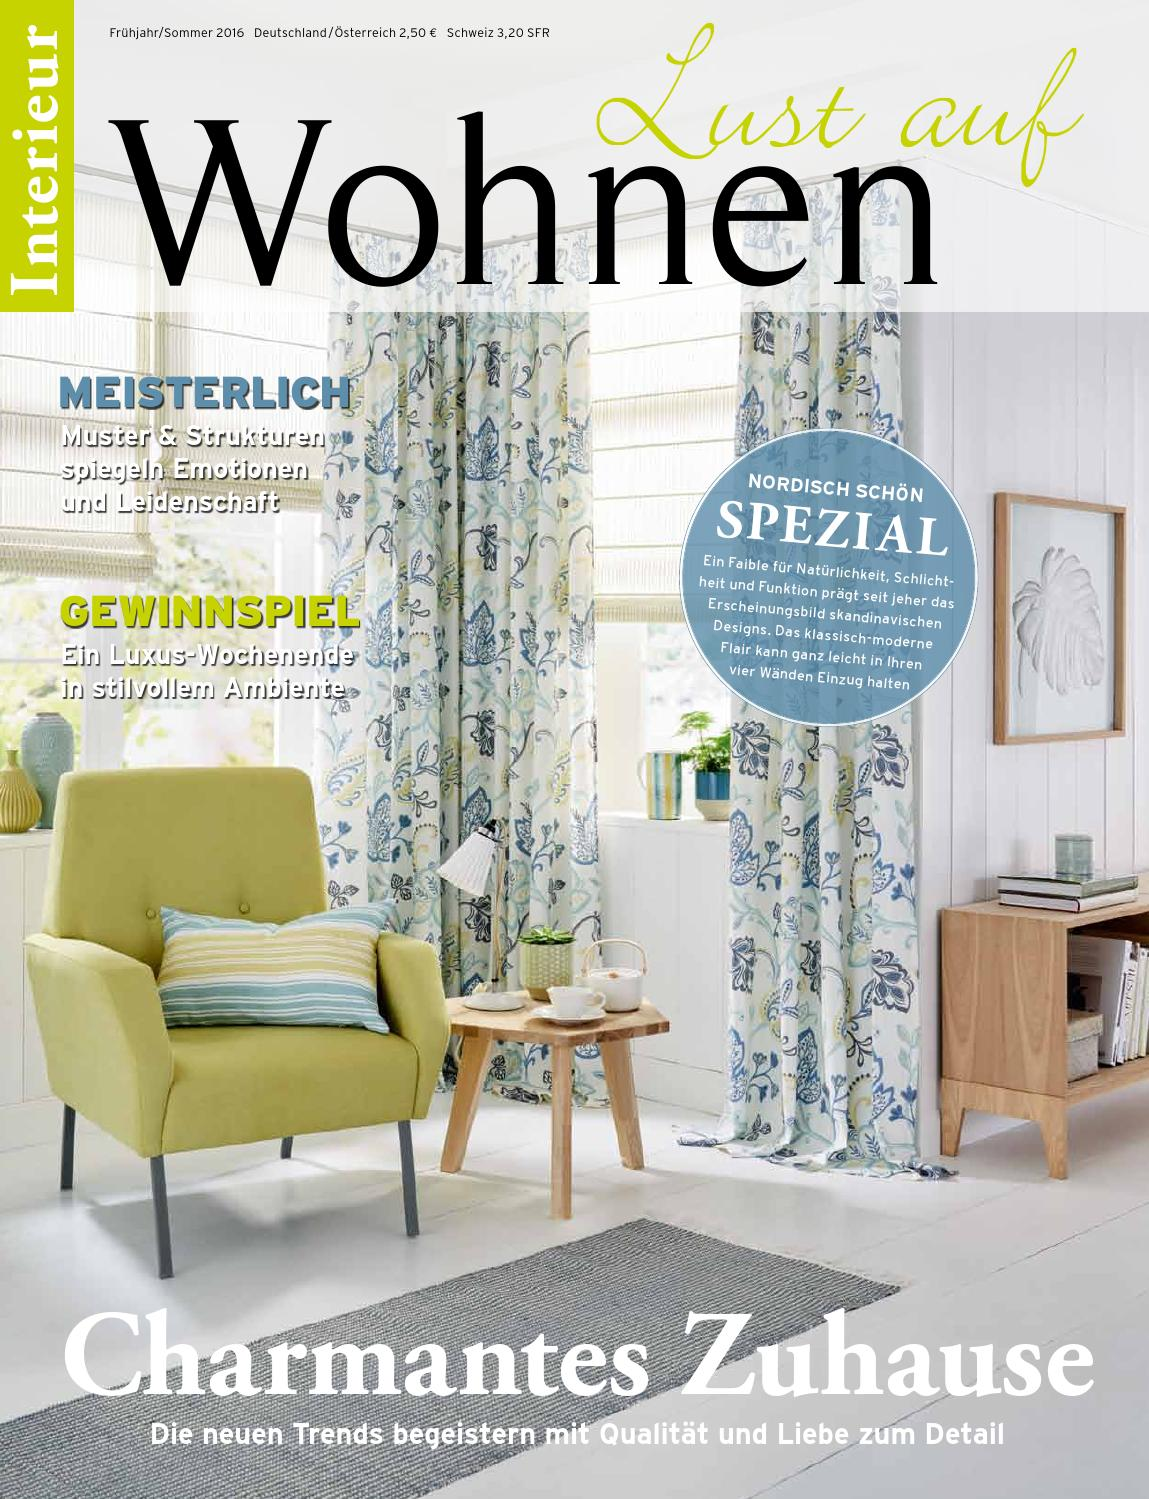 Interieur - Lust auf Wohnen by new media works - issuu